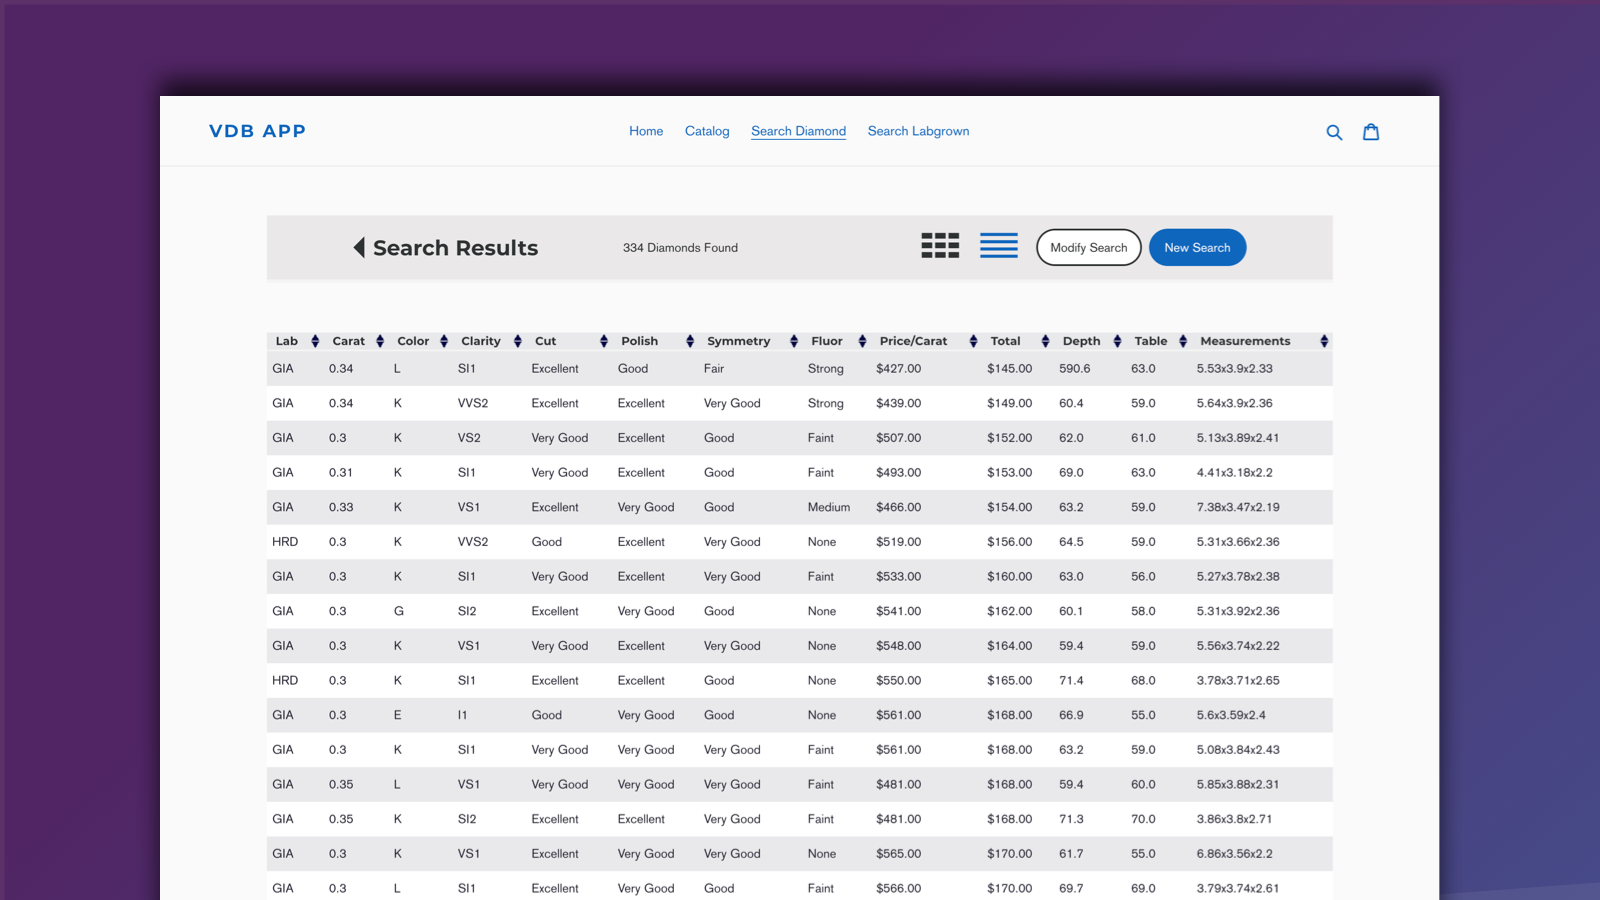 Search Results List View